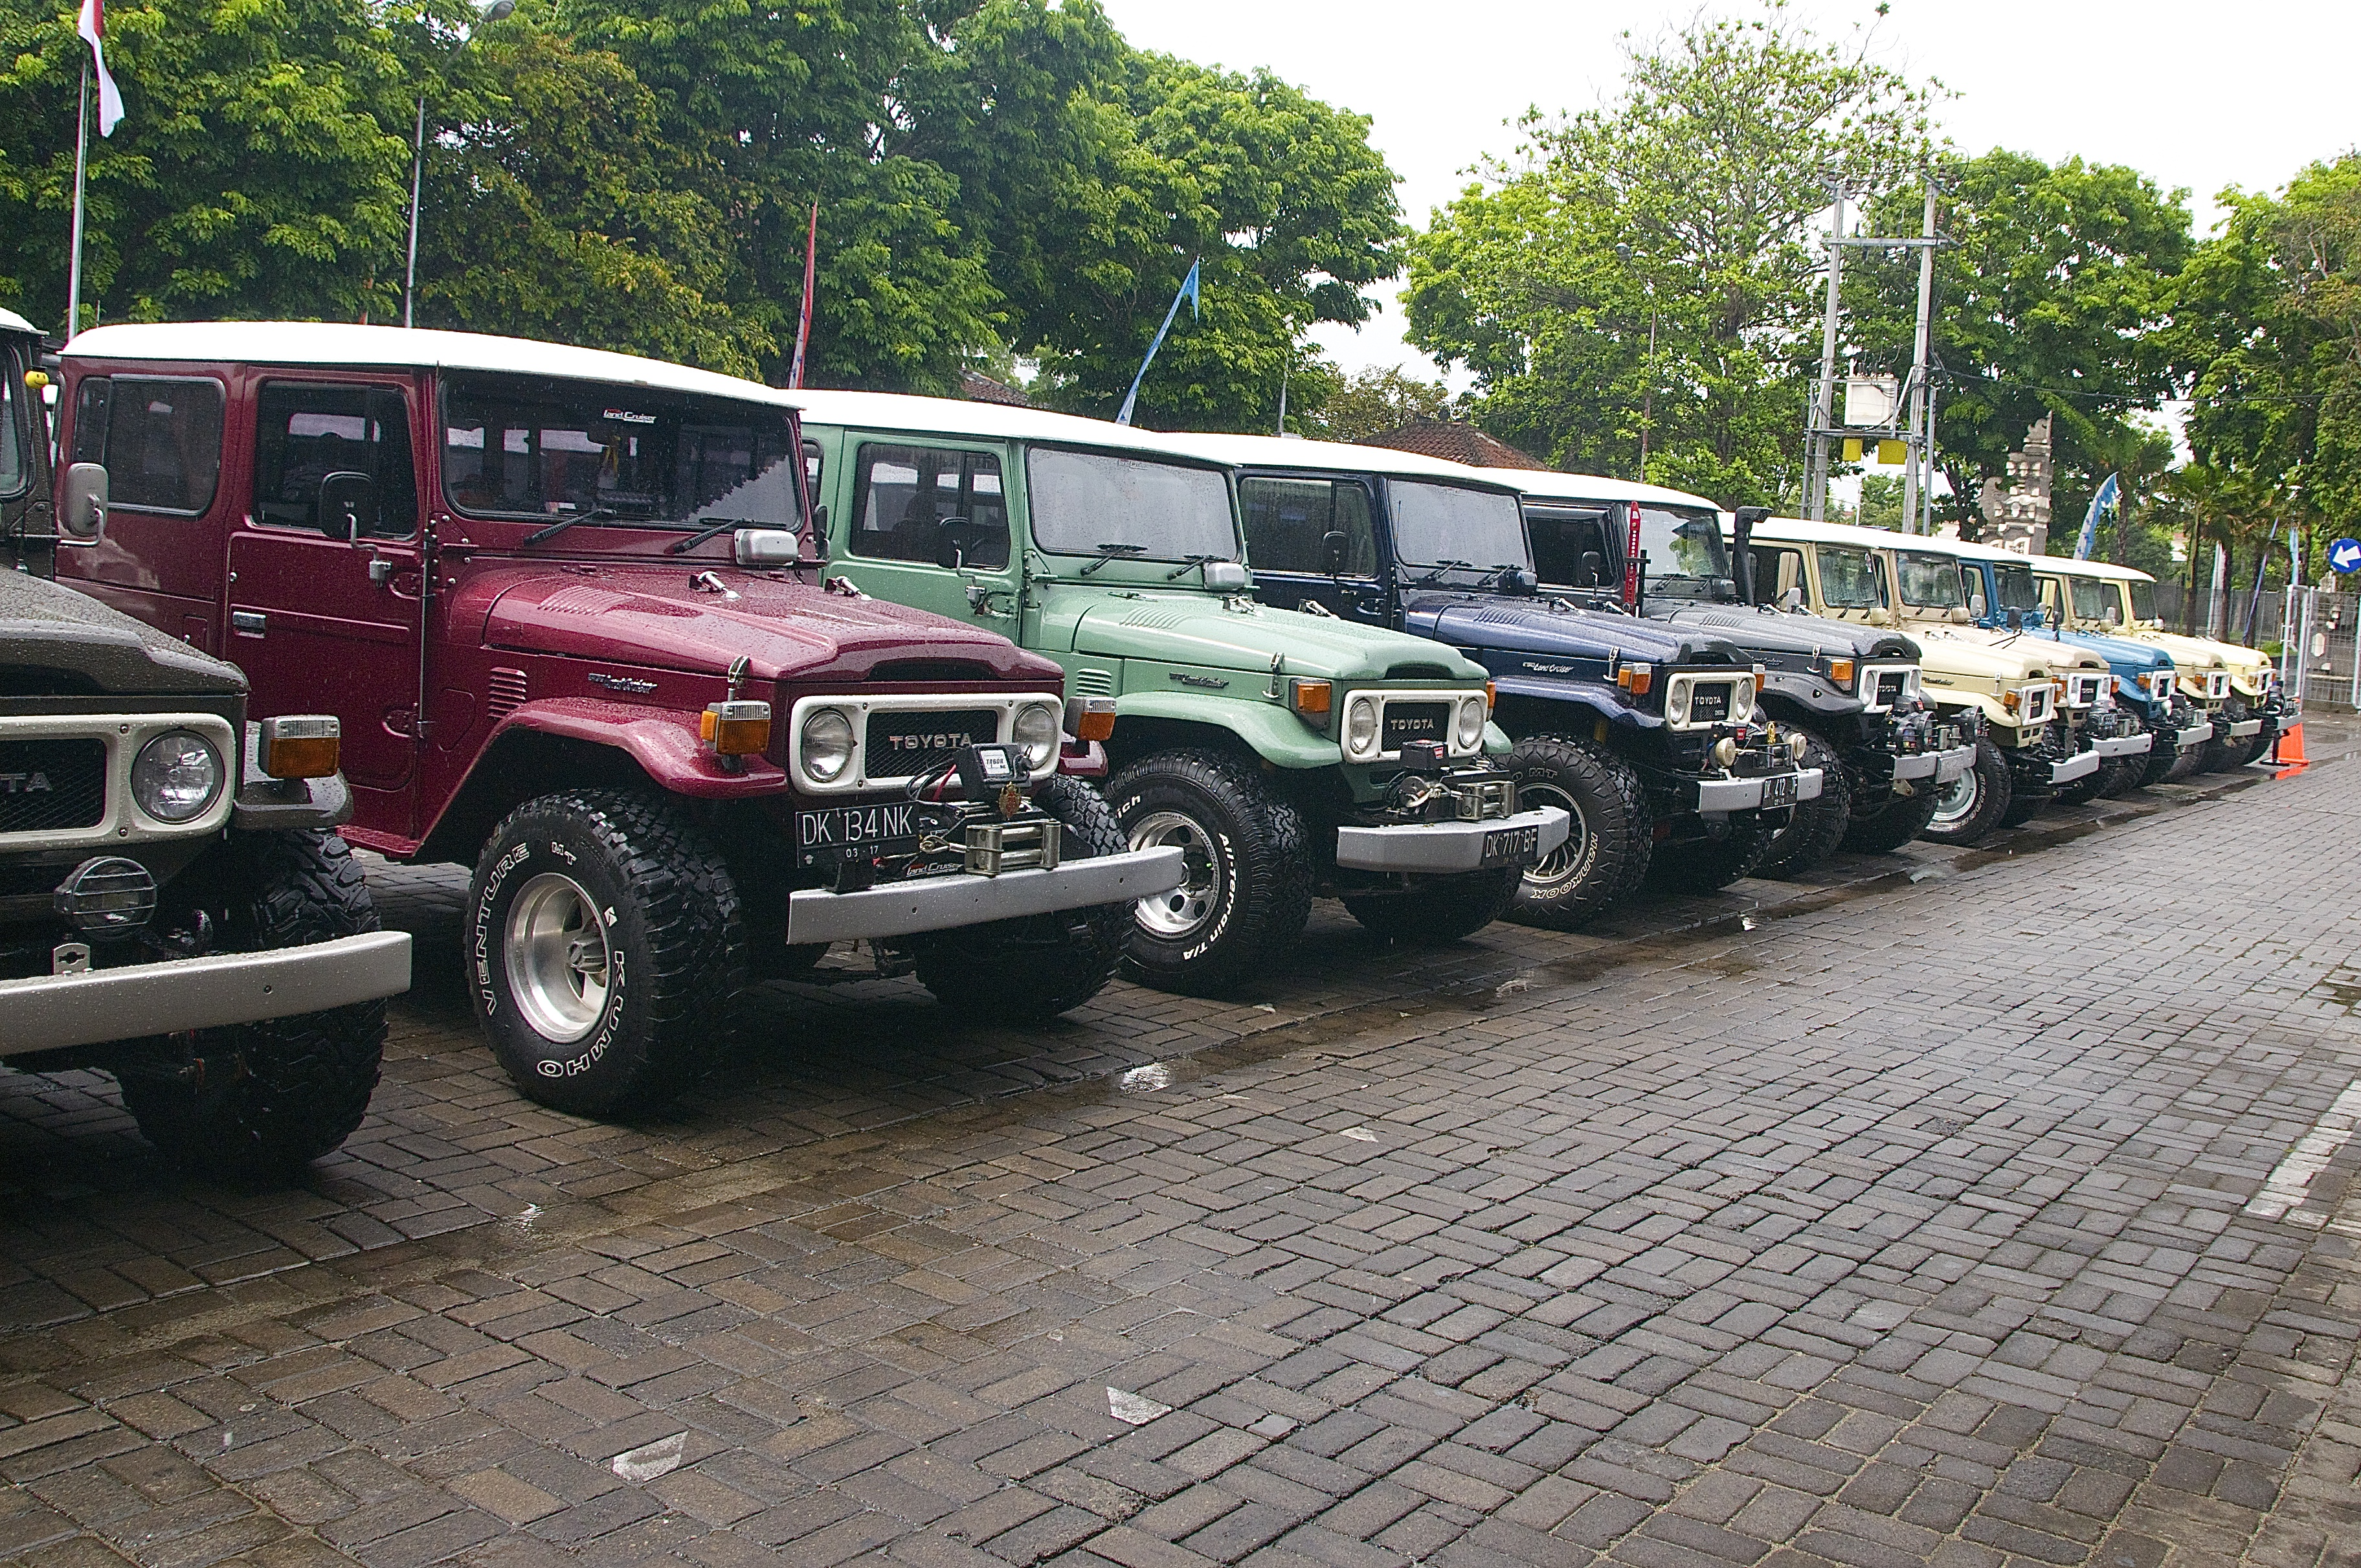 Toyota Land Cruiser Fj40 Navigating Bali The Is An Iconic Truck Of Indonesia And Phillipines They Were Produced By Between 1960 To 1984